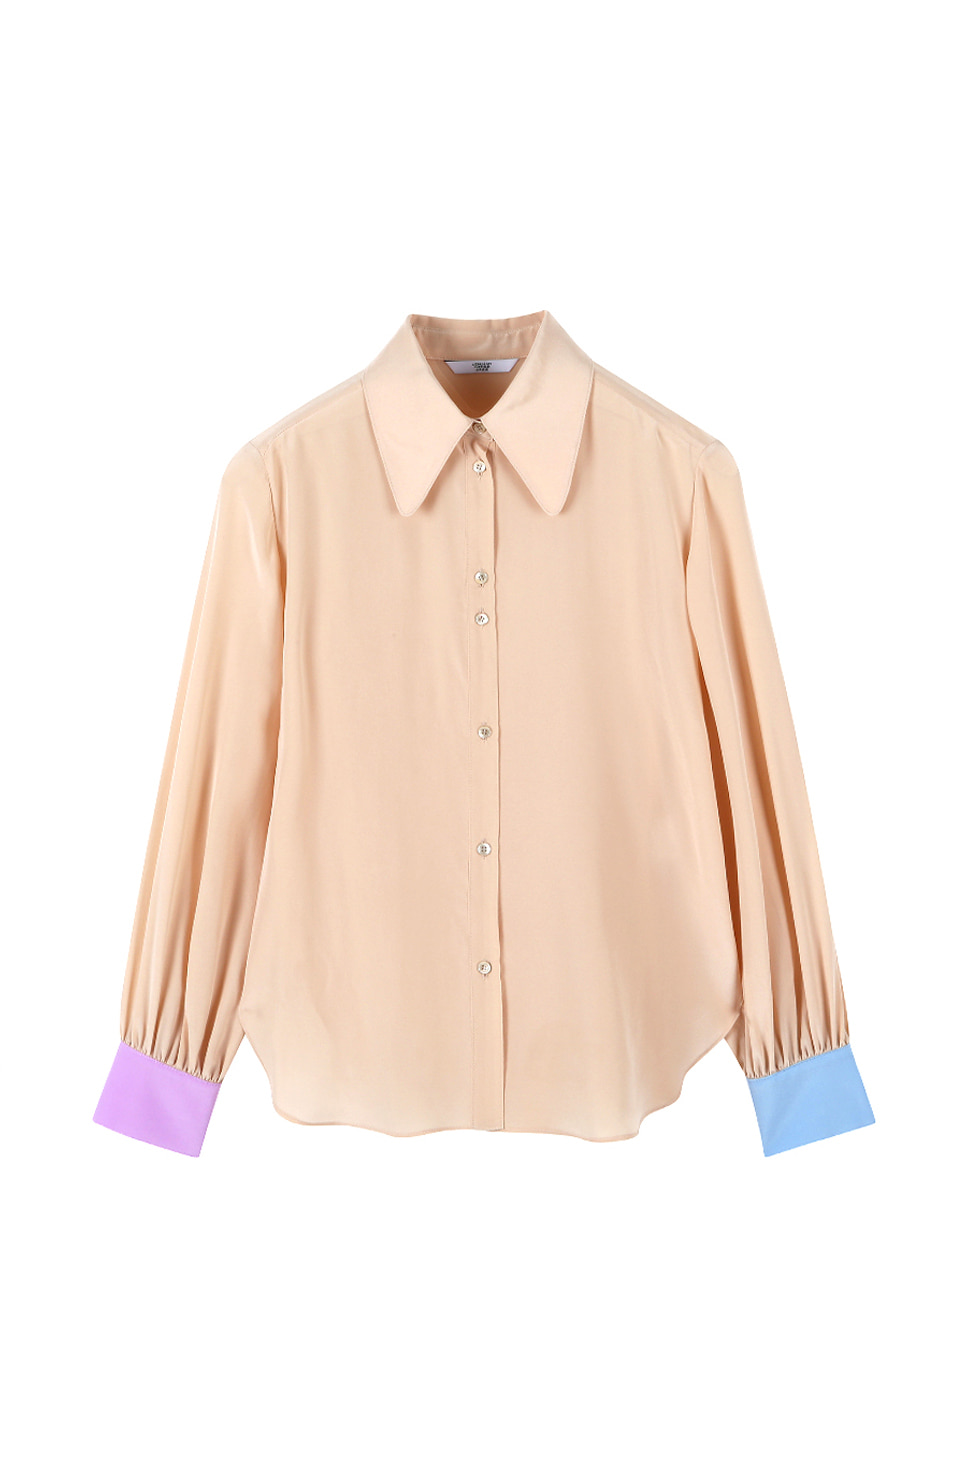 COLOR BLOCK SILK BLOUSE - BEIGE